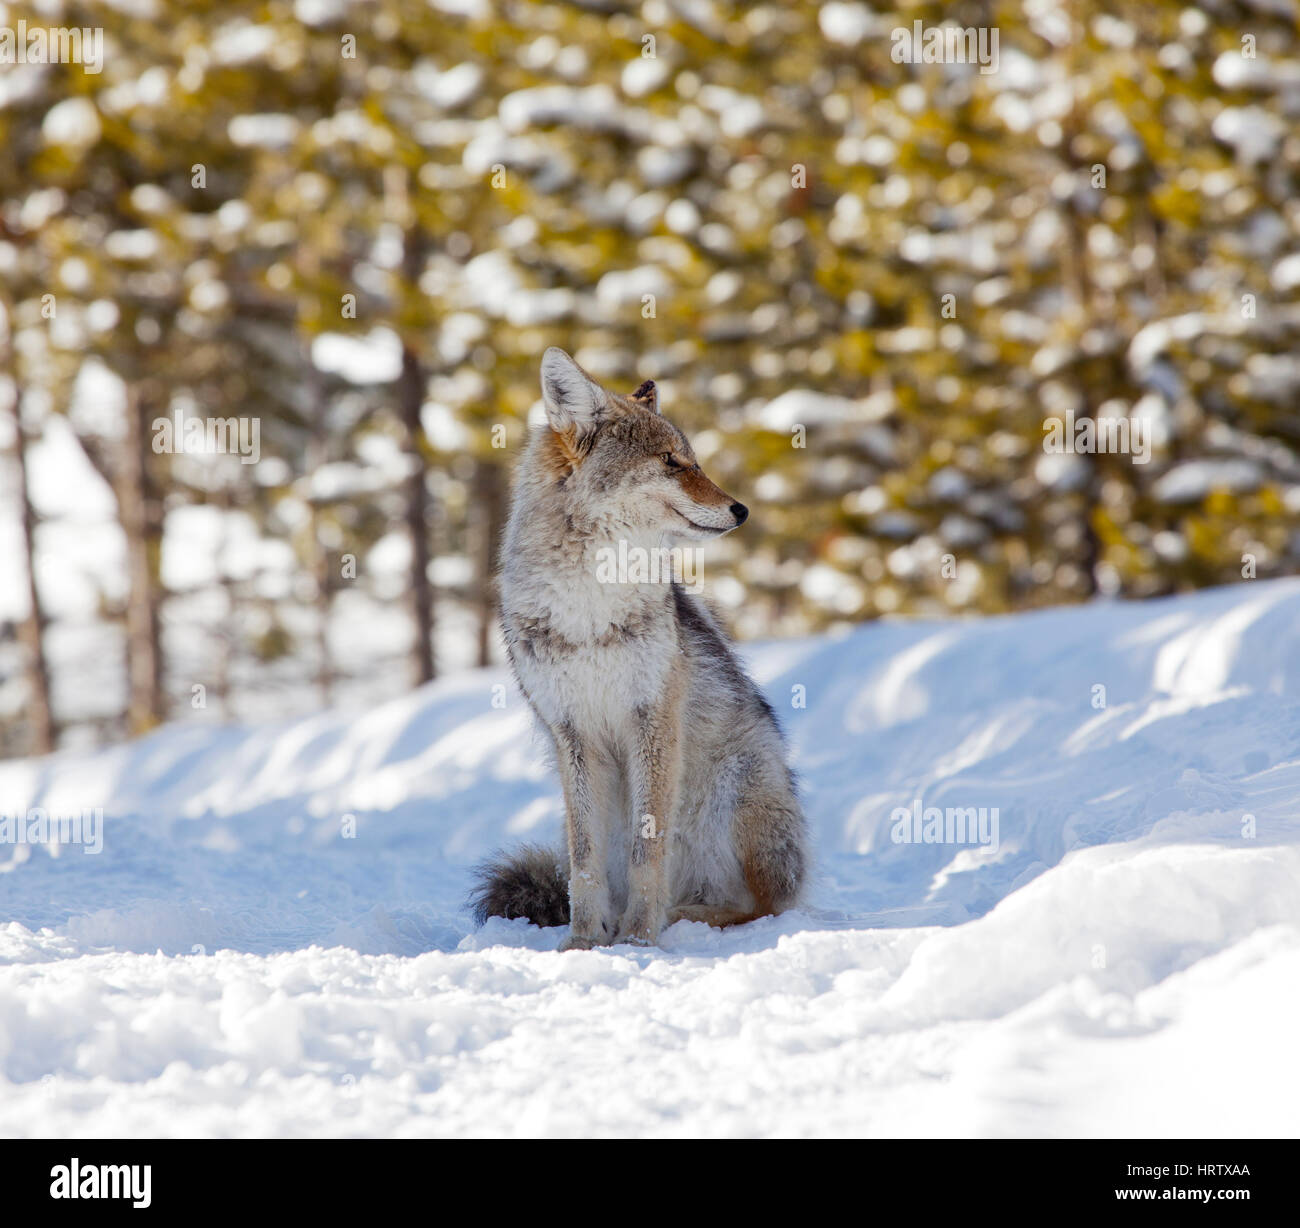 Coyote in Yellowstone National Park, Wyoming, USA - Stock Image